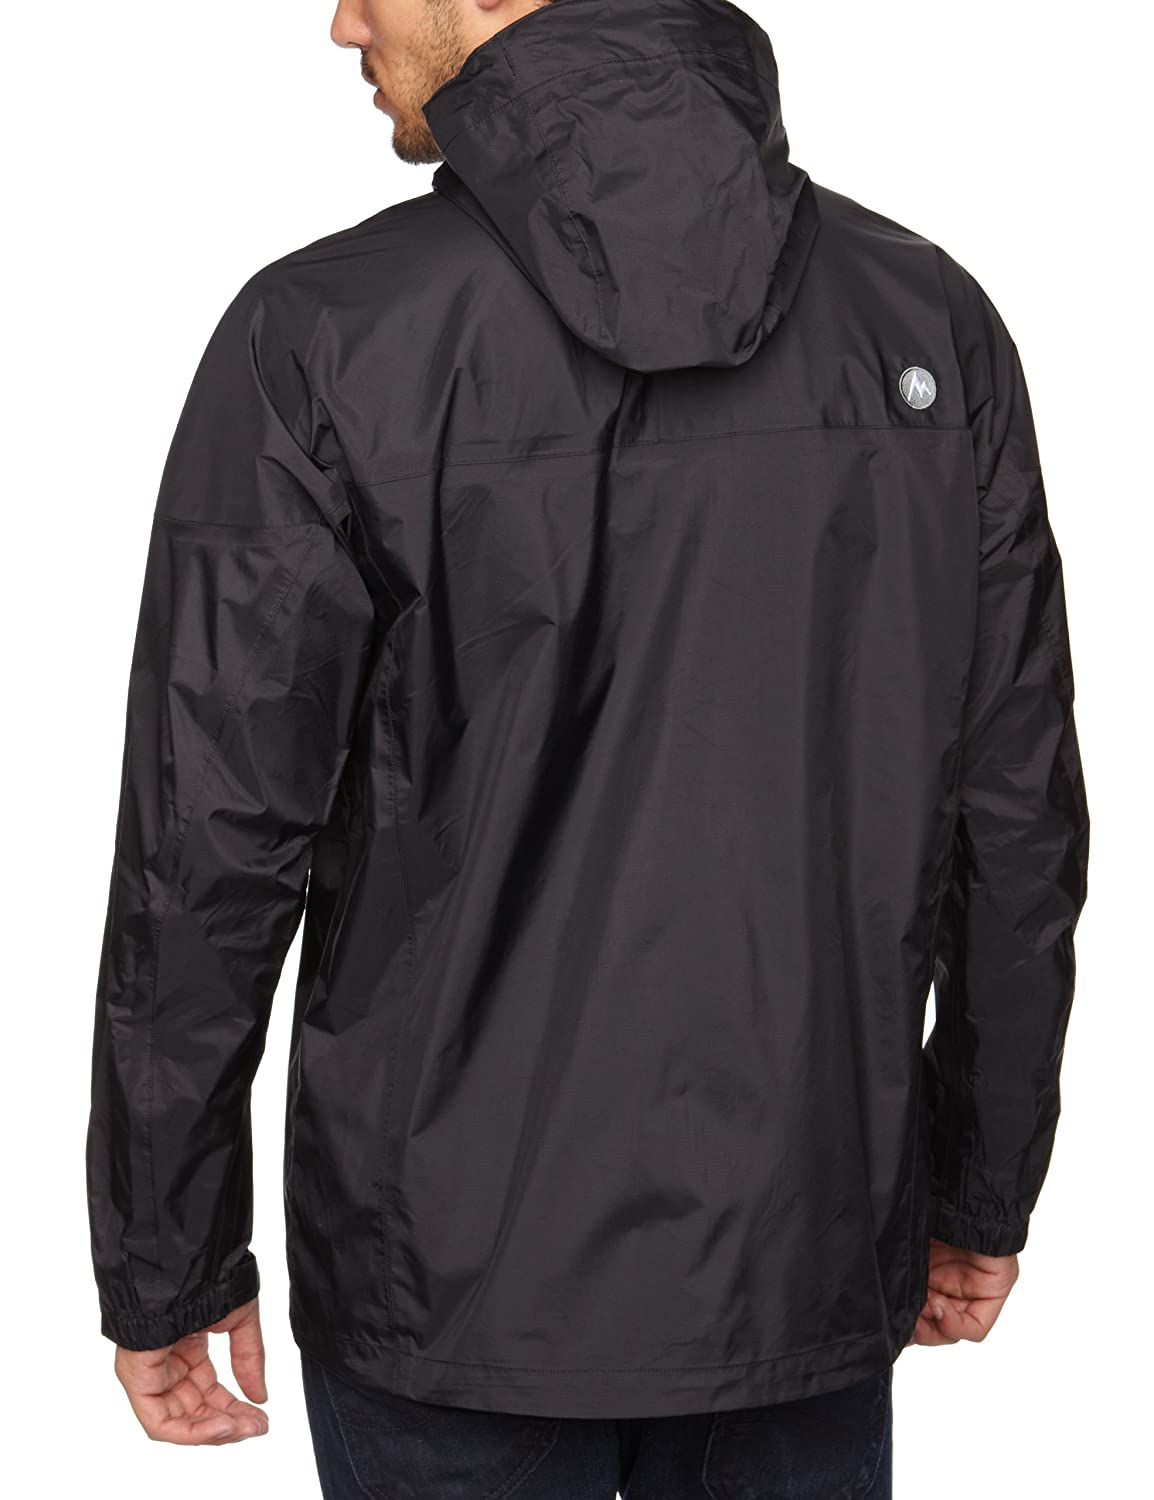 Amazon.com: Marmot Men's Precip Jacket: Sports & Outdoors